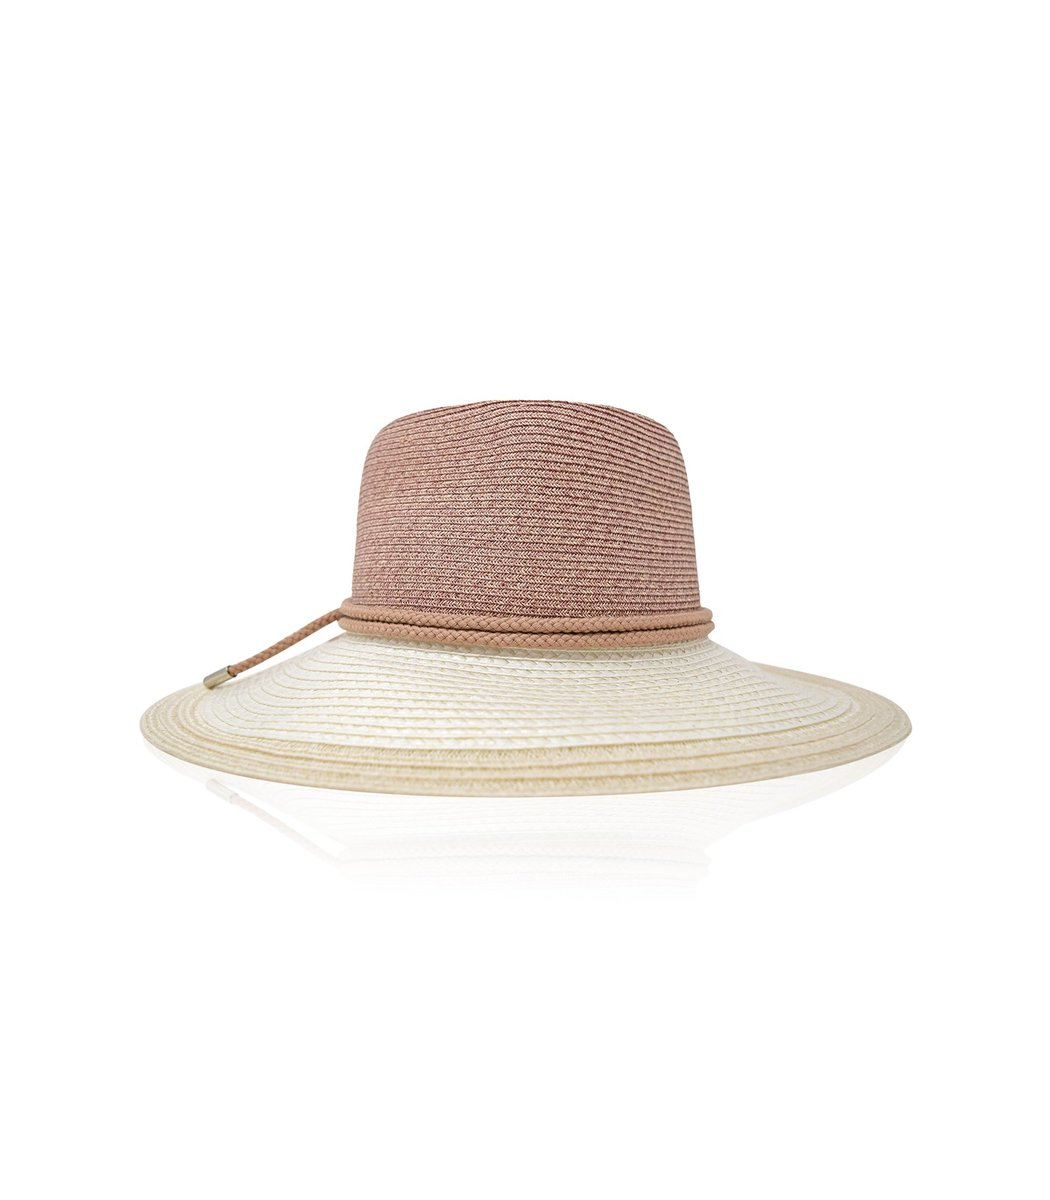 Gigi Burris Derek Hat in Blush/Ivory